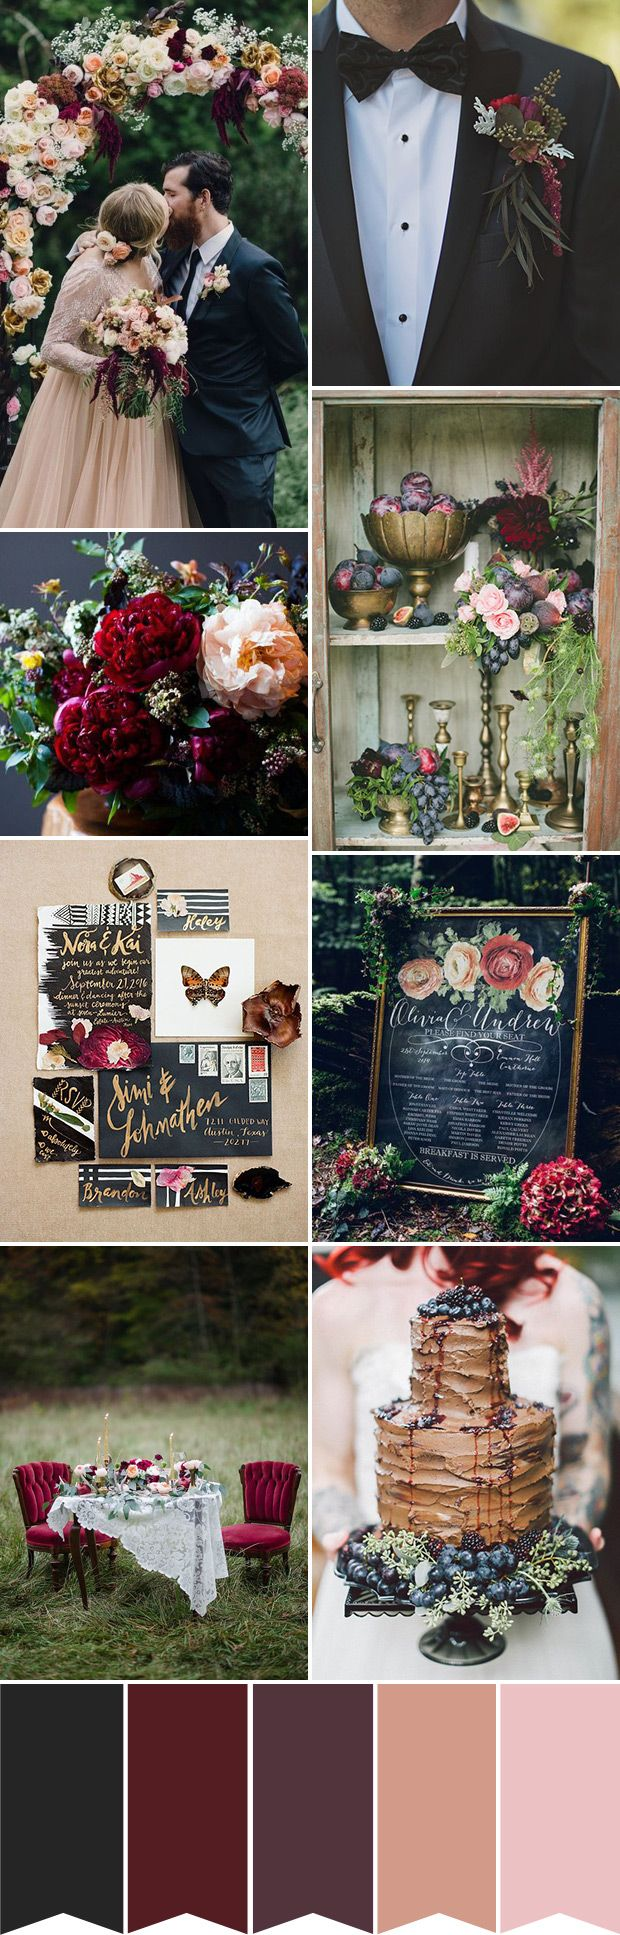 Dark Woodland Romance - A Berry Red and Black Winter Wedding Palette